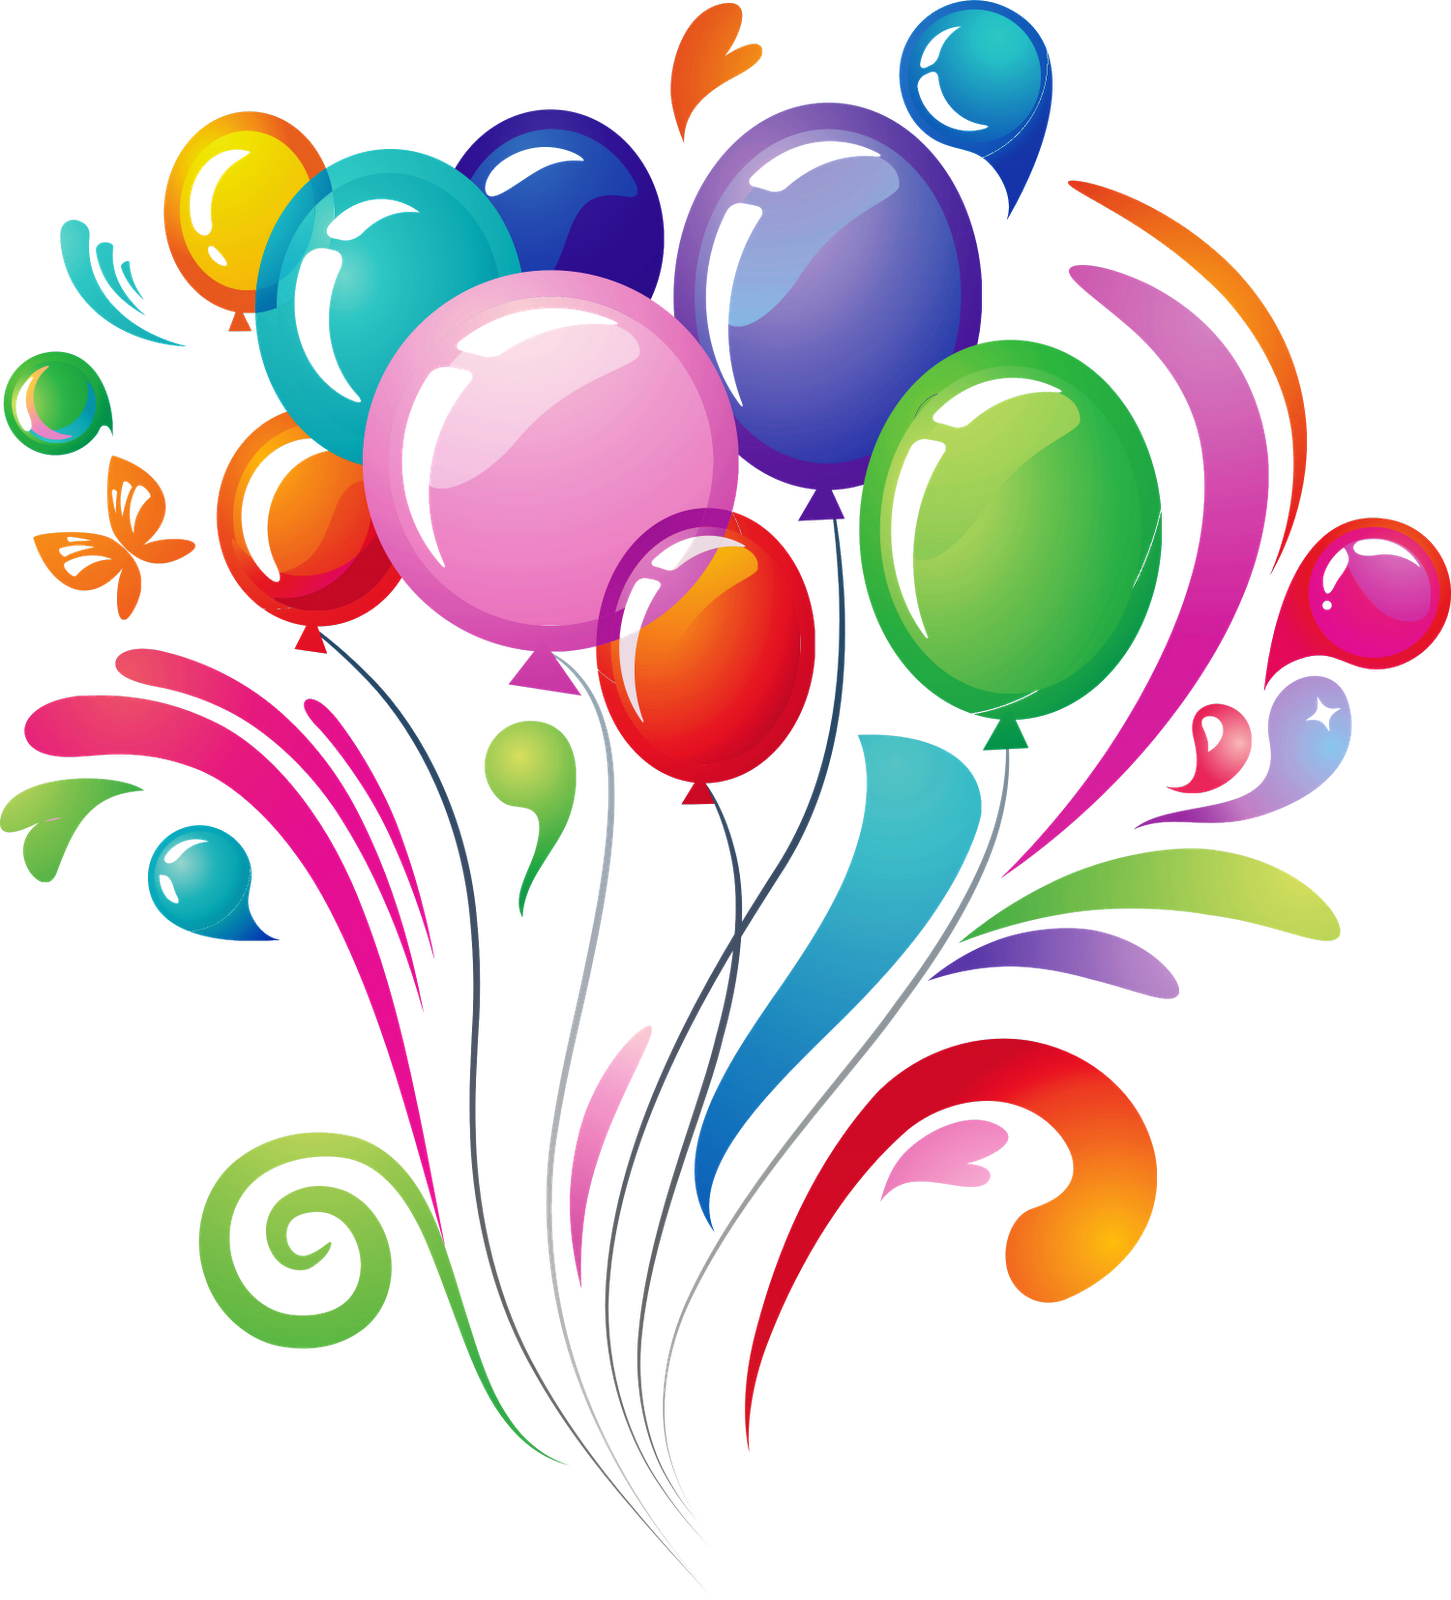 Transparent background clipart png clipart transparent stock Download Happy Birthday Transparent Background For Designing ... clipart transparent stock